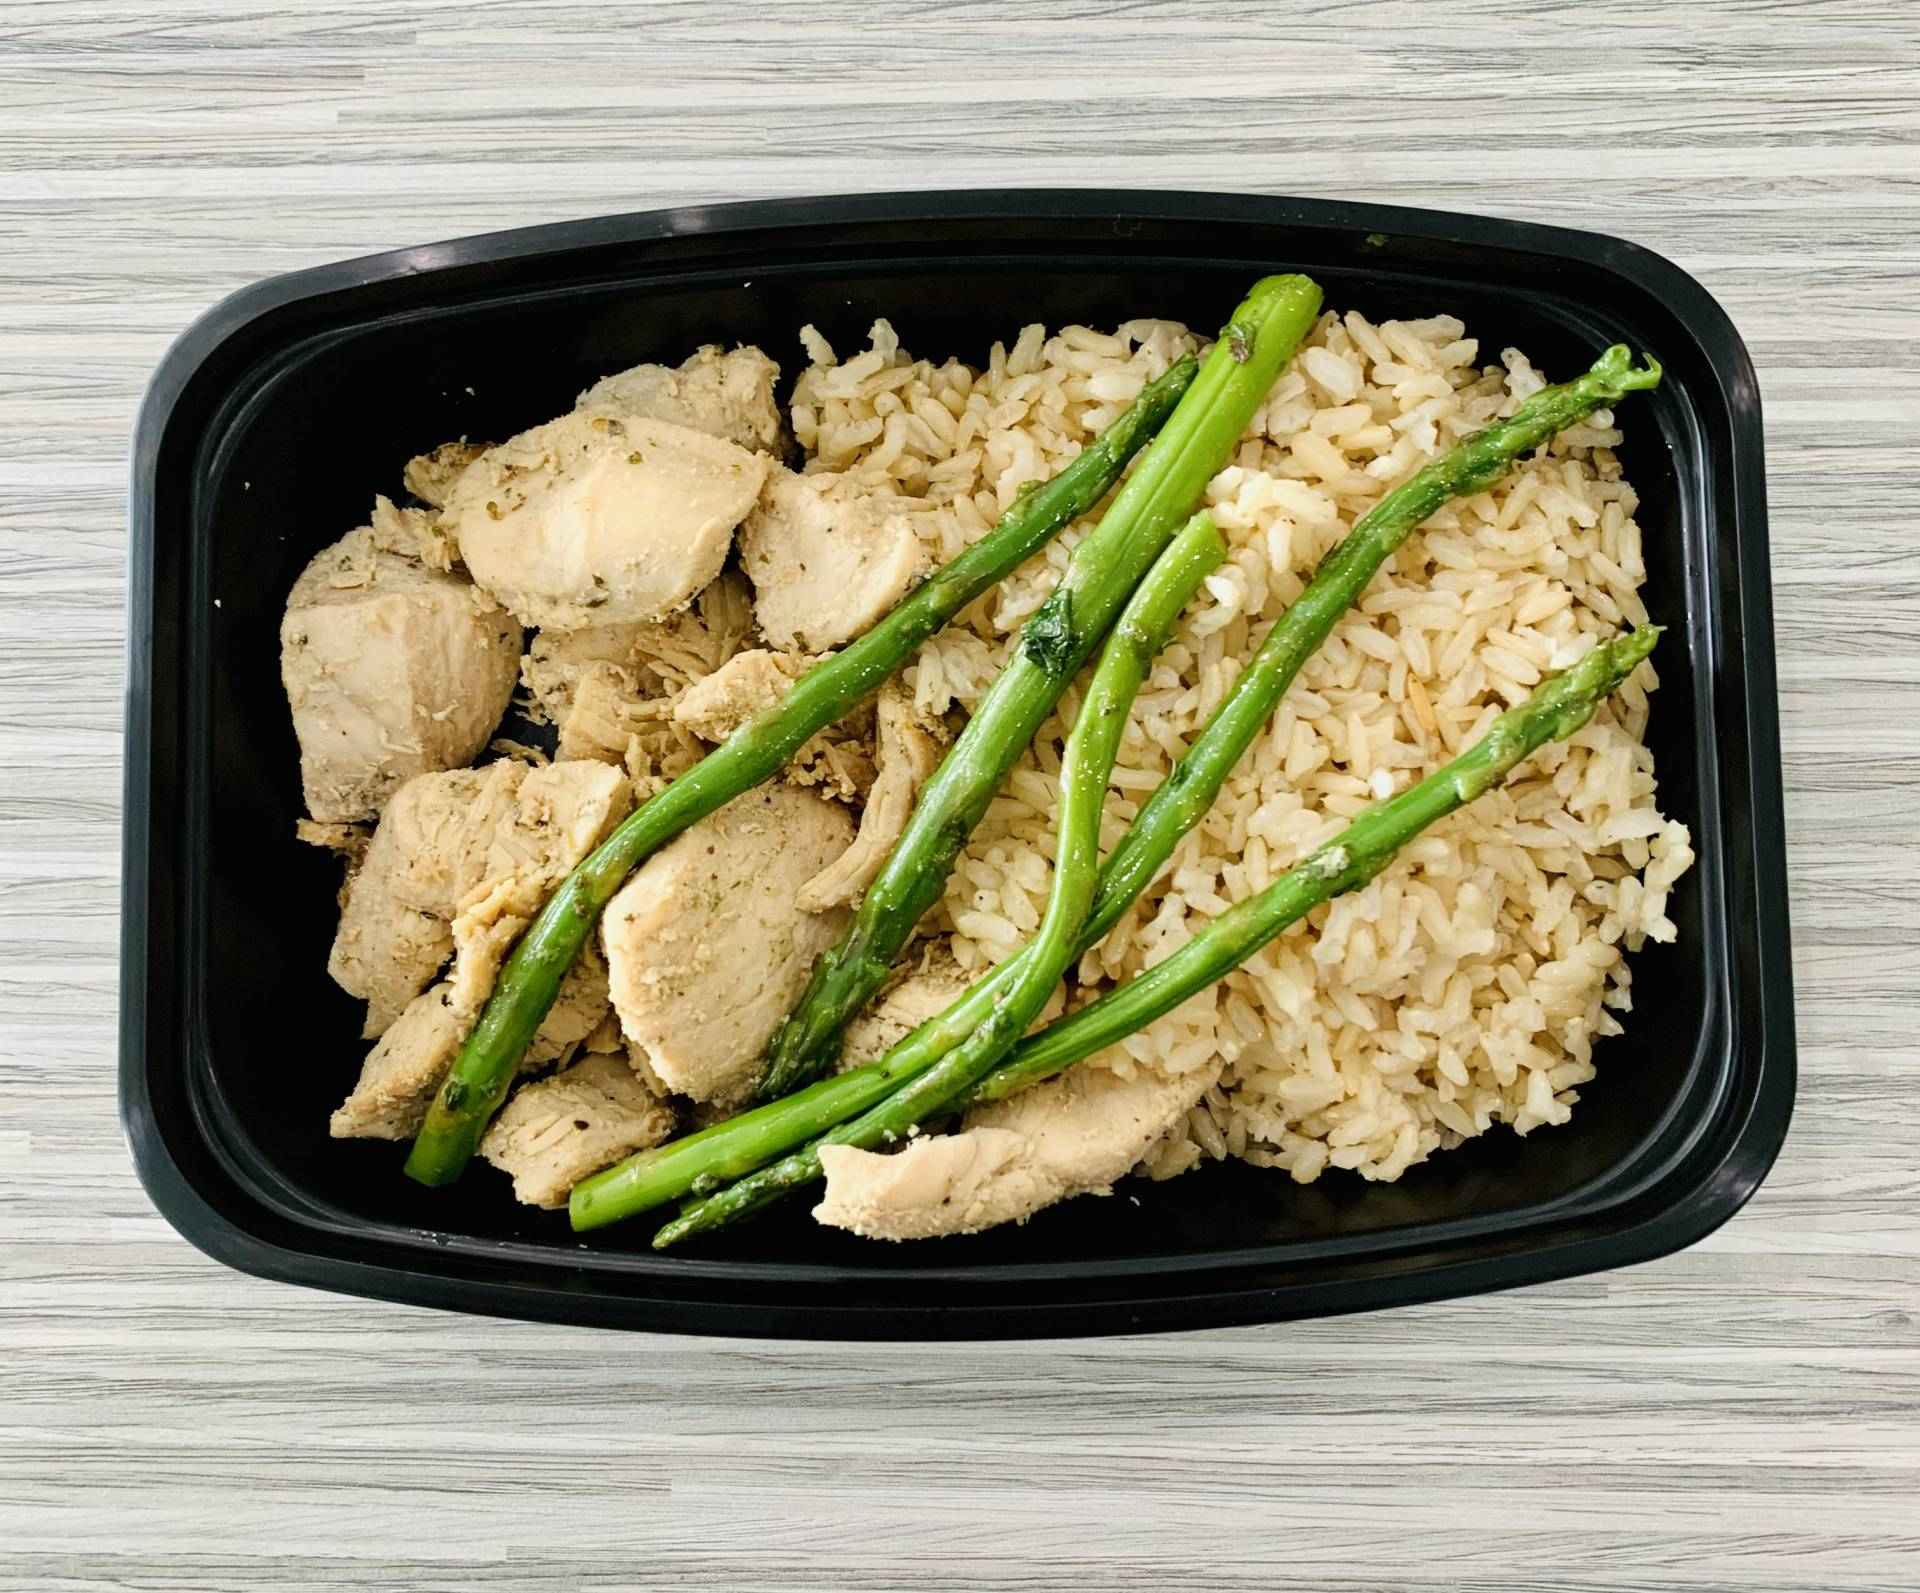 Grilled Chicken, Brown Rice and Asparagus